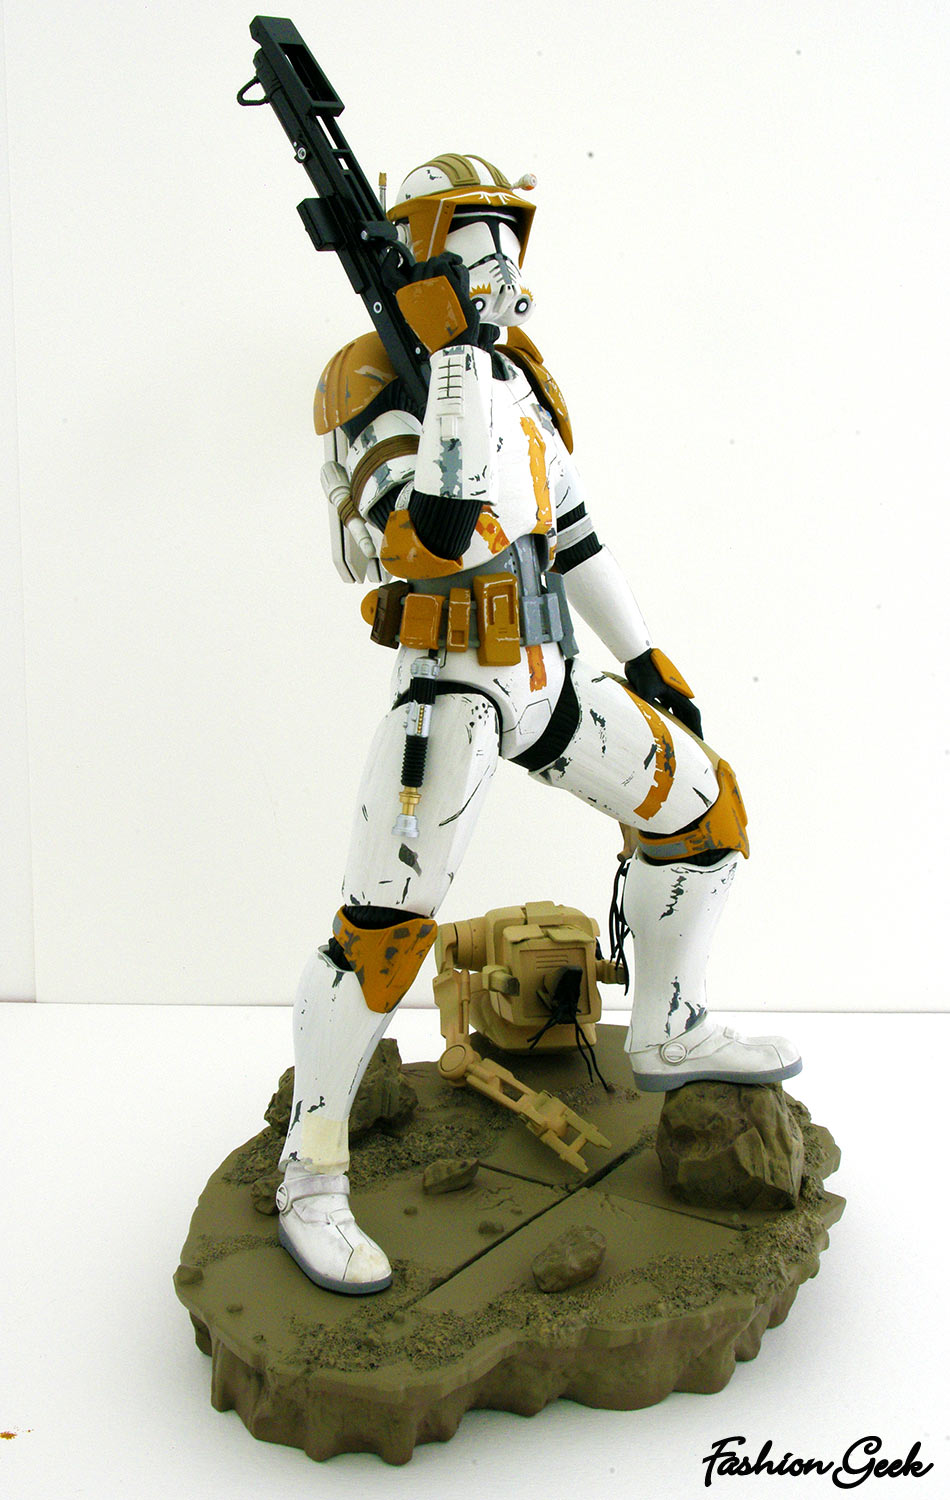 Commander-Cody-star-wars-figurine5